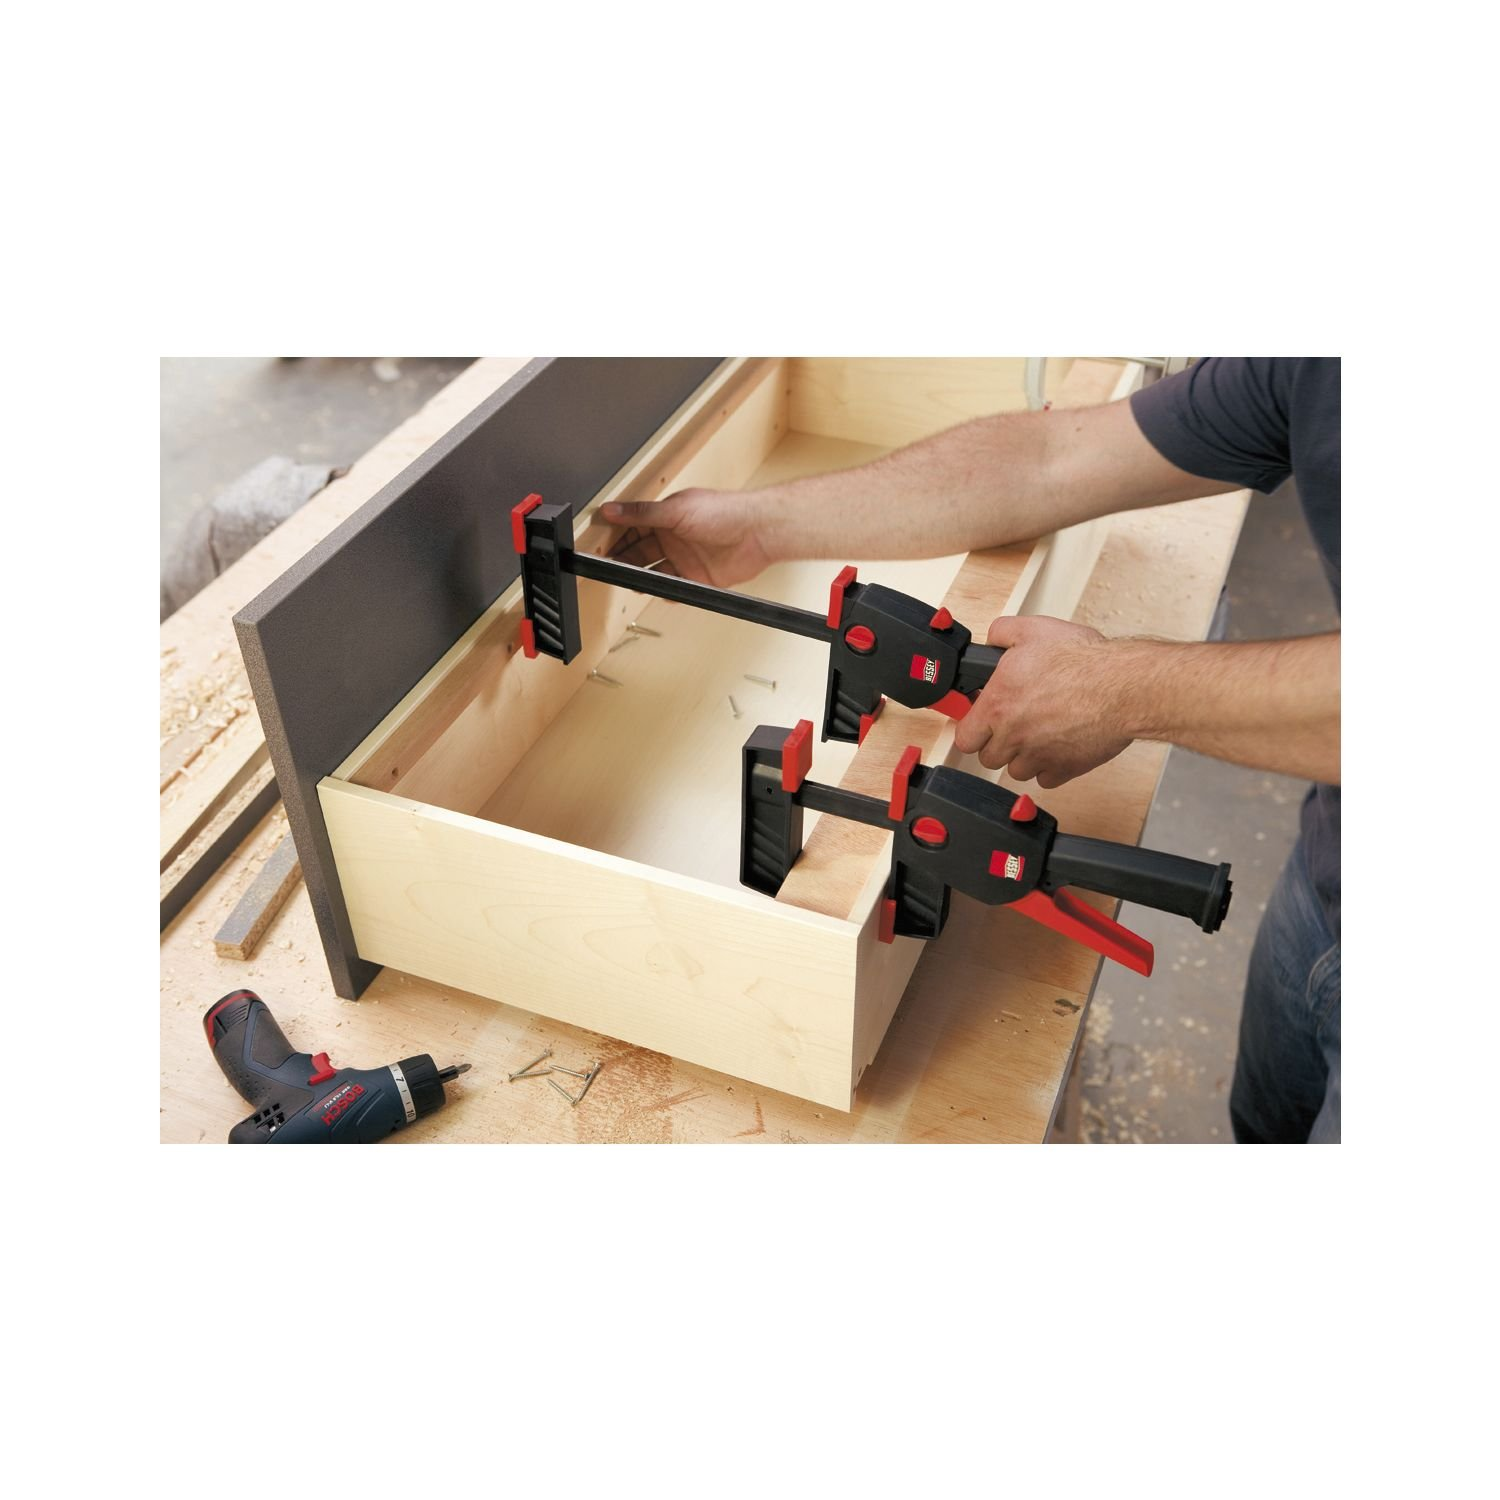 Bessey Duo65-8 Duo Clamp Capacity 65Cm by Bessey (Image #11)